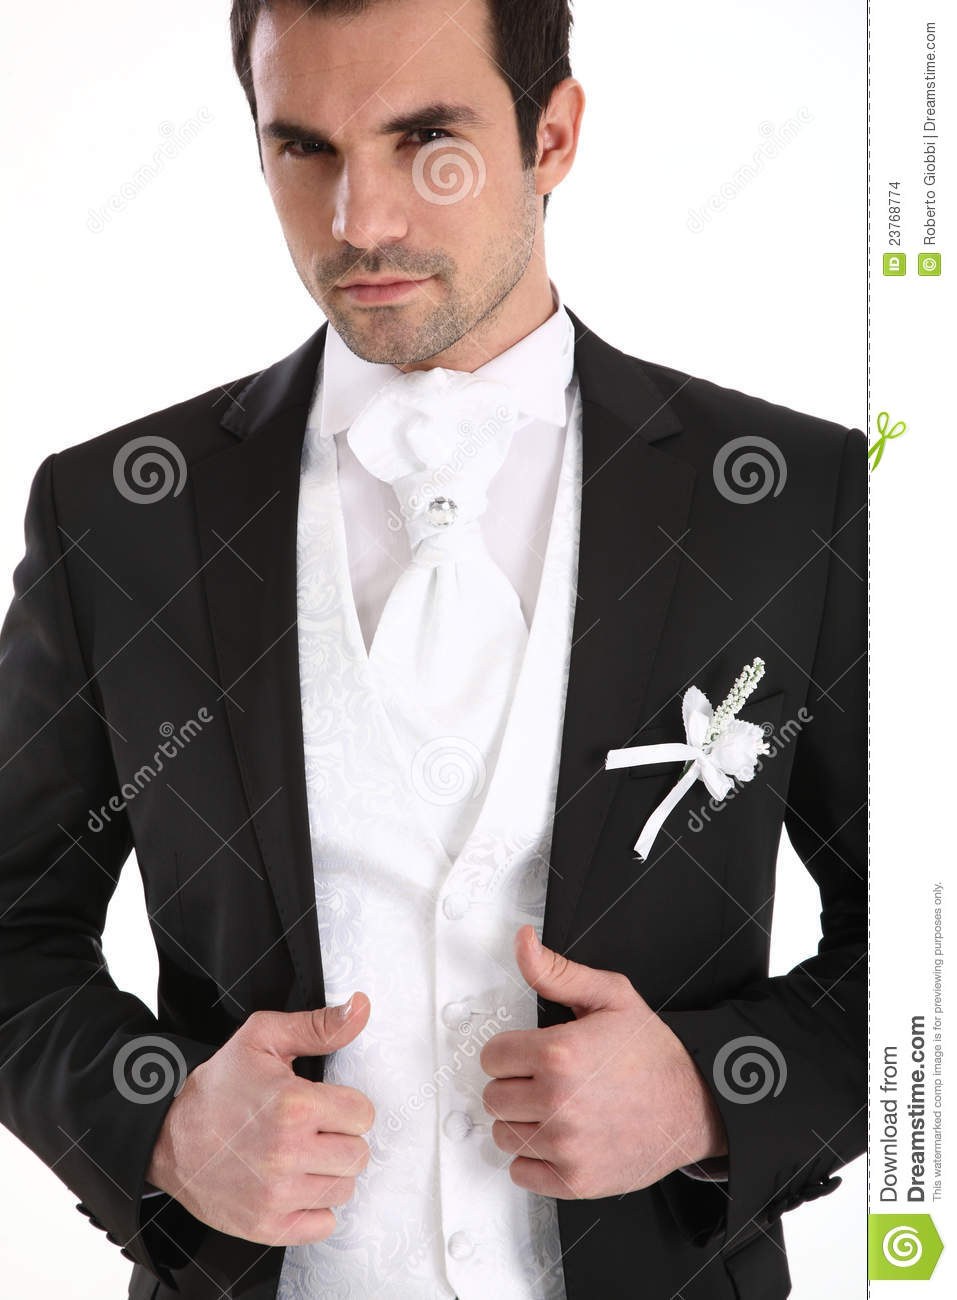 Handsome Man In Tuxedo Stock Images - Image: 23768774